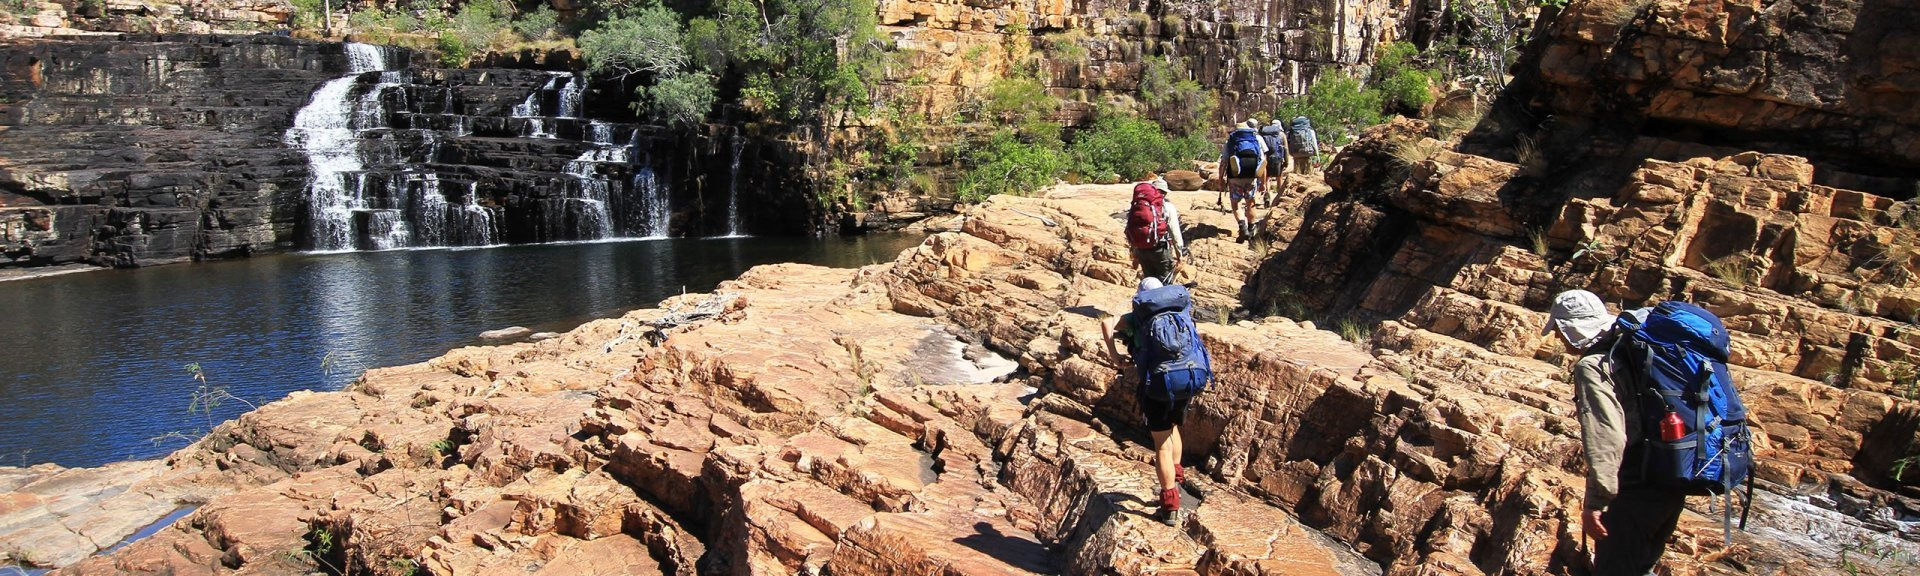 Trekking in Kakadu. Photo: Trek Tours